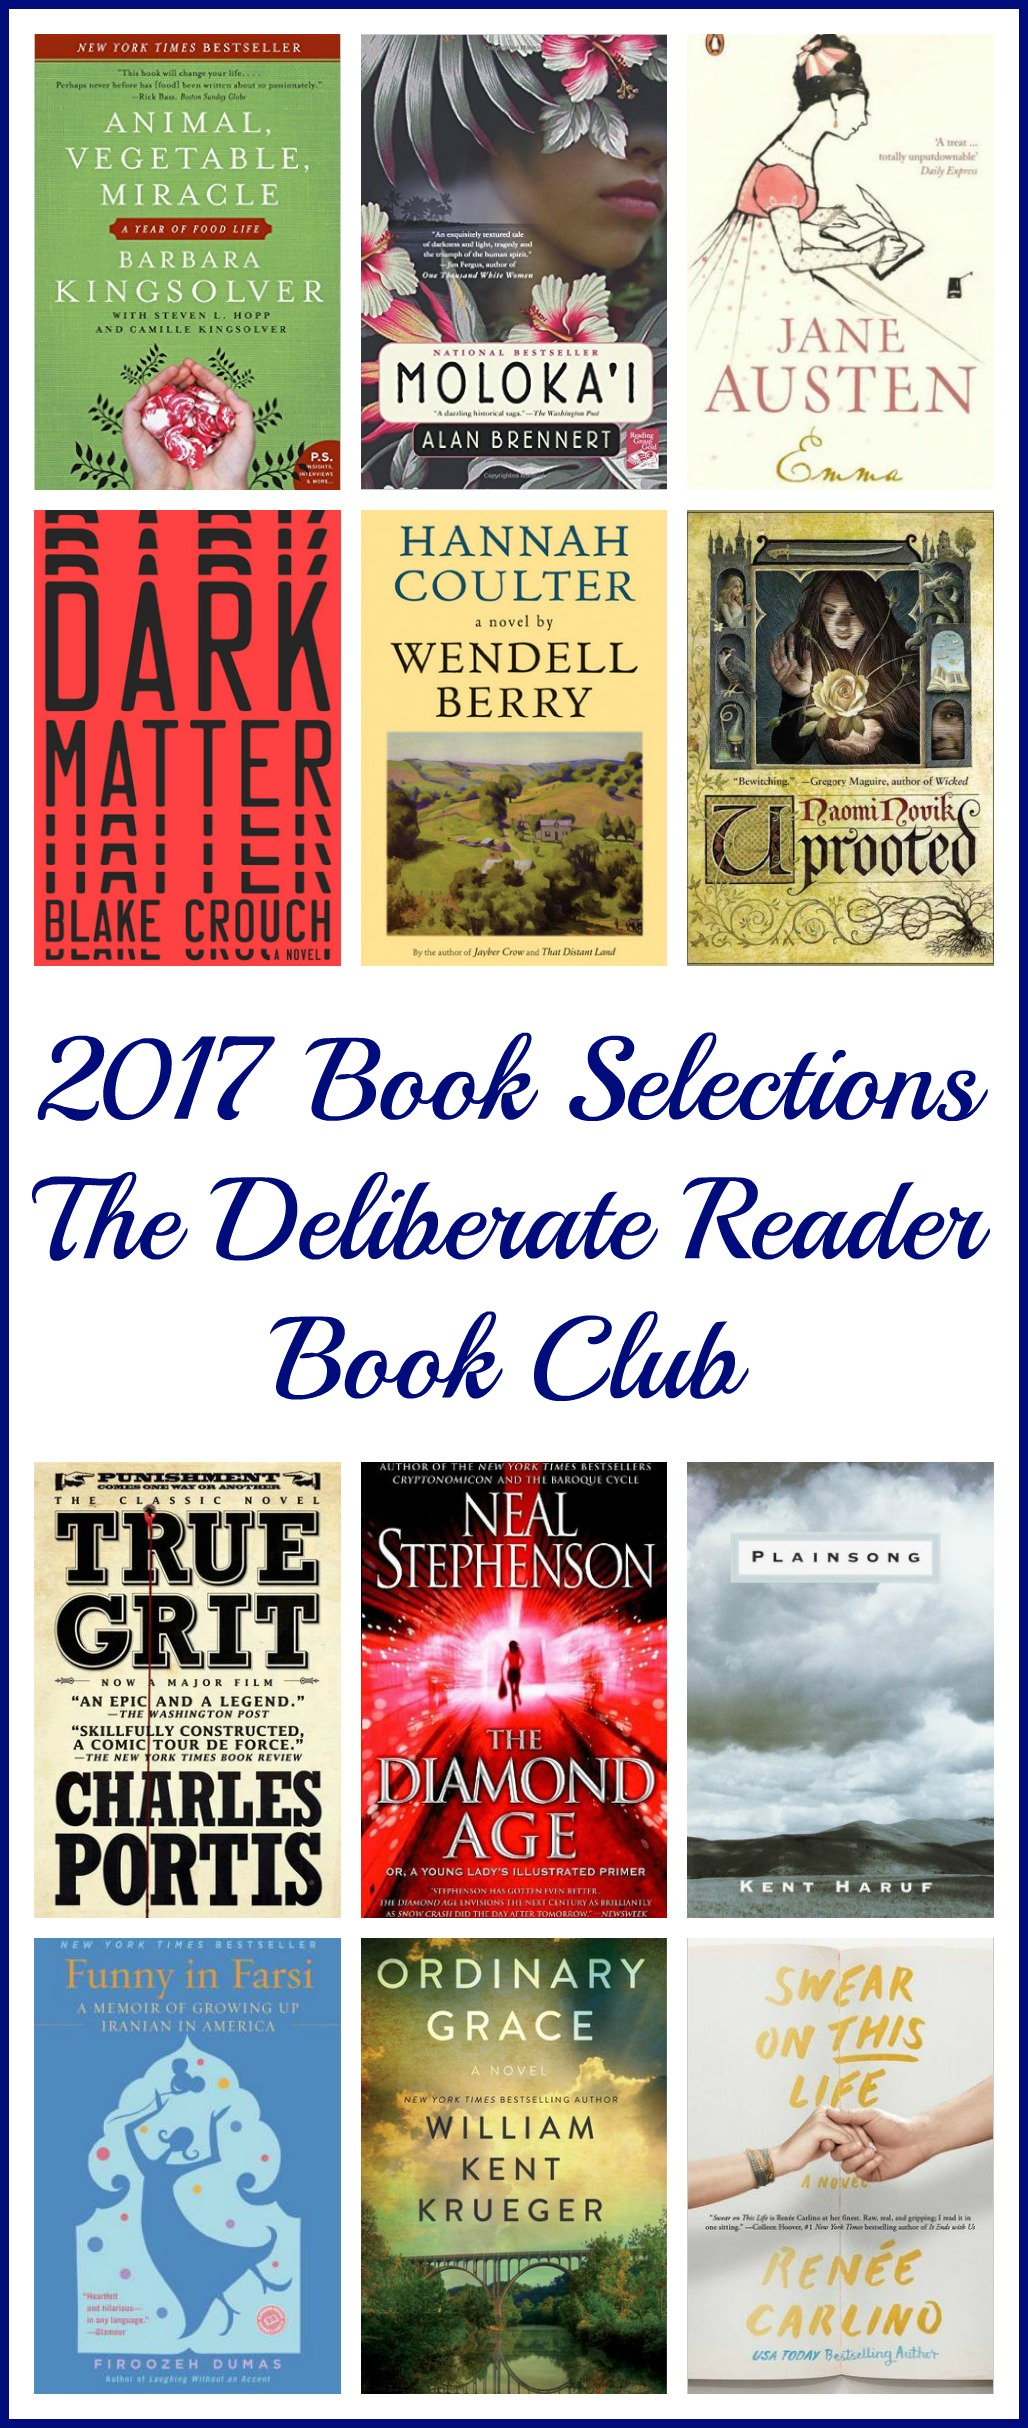 The Deliberate Reader - because great books shouldn't be